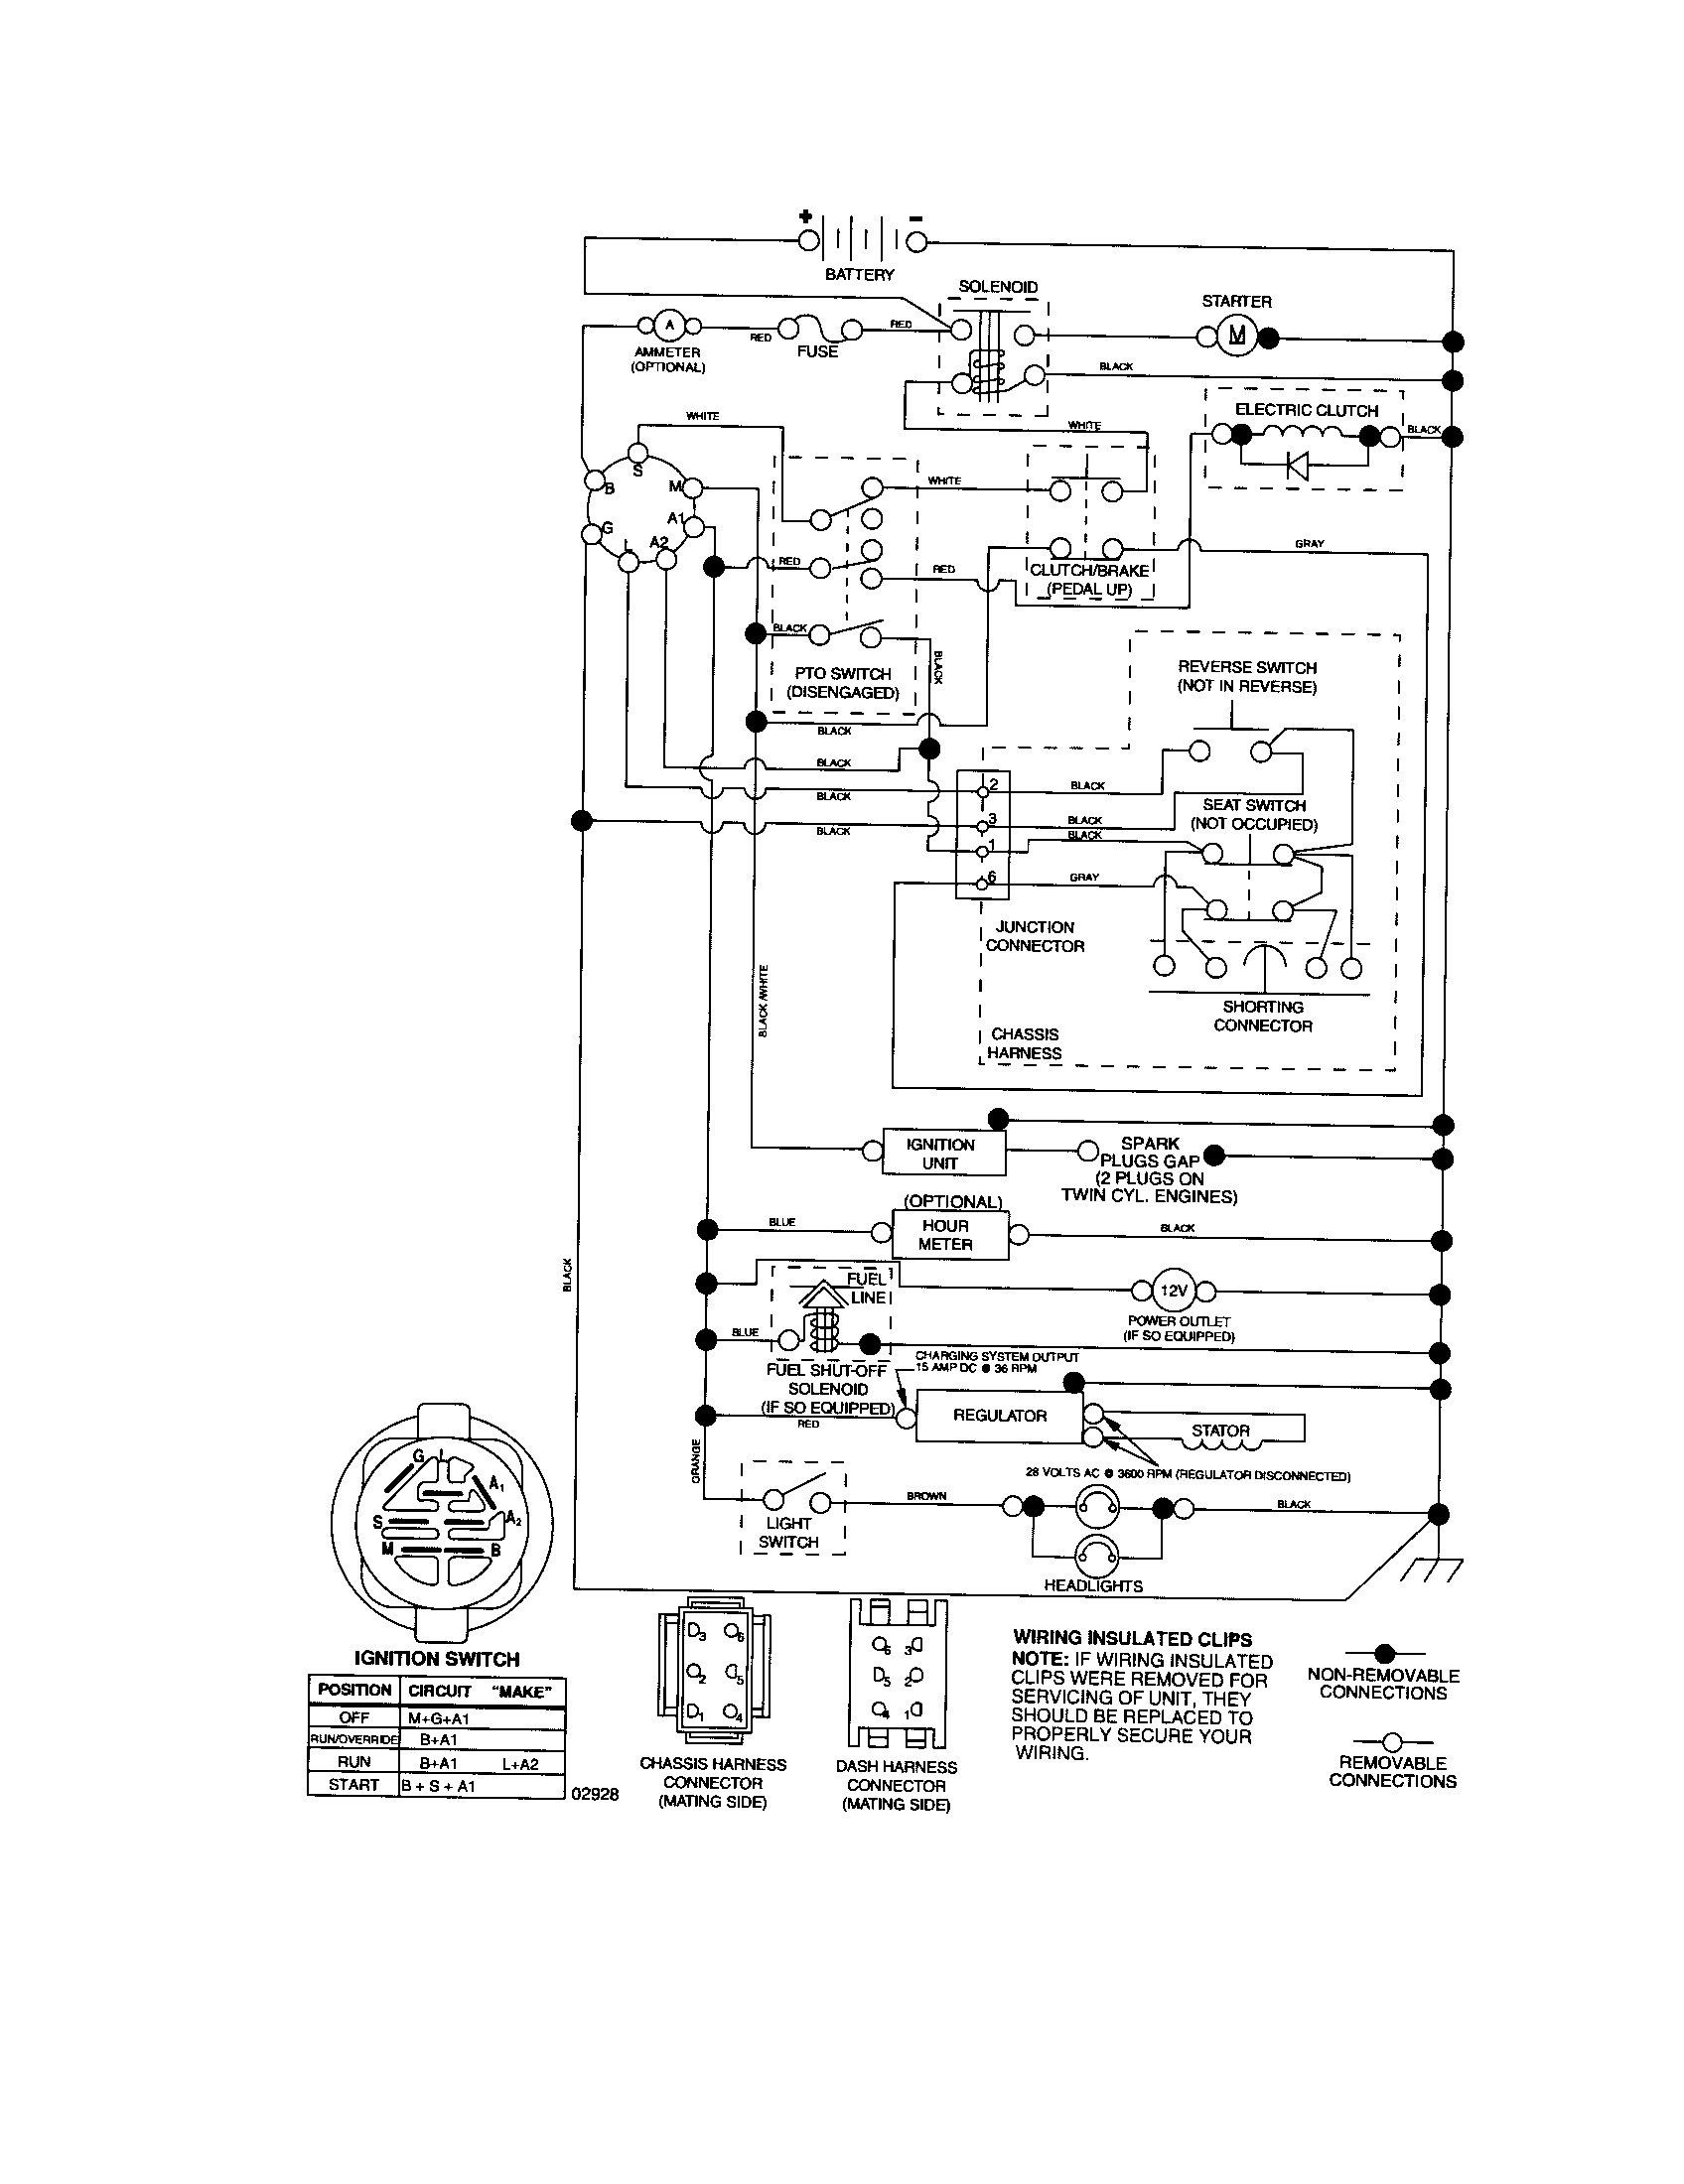 Pin On Electrical Schematics Craftsman Lawn Tracttor